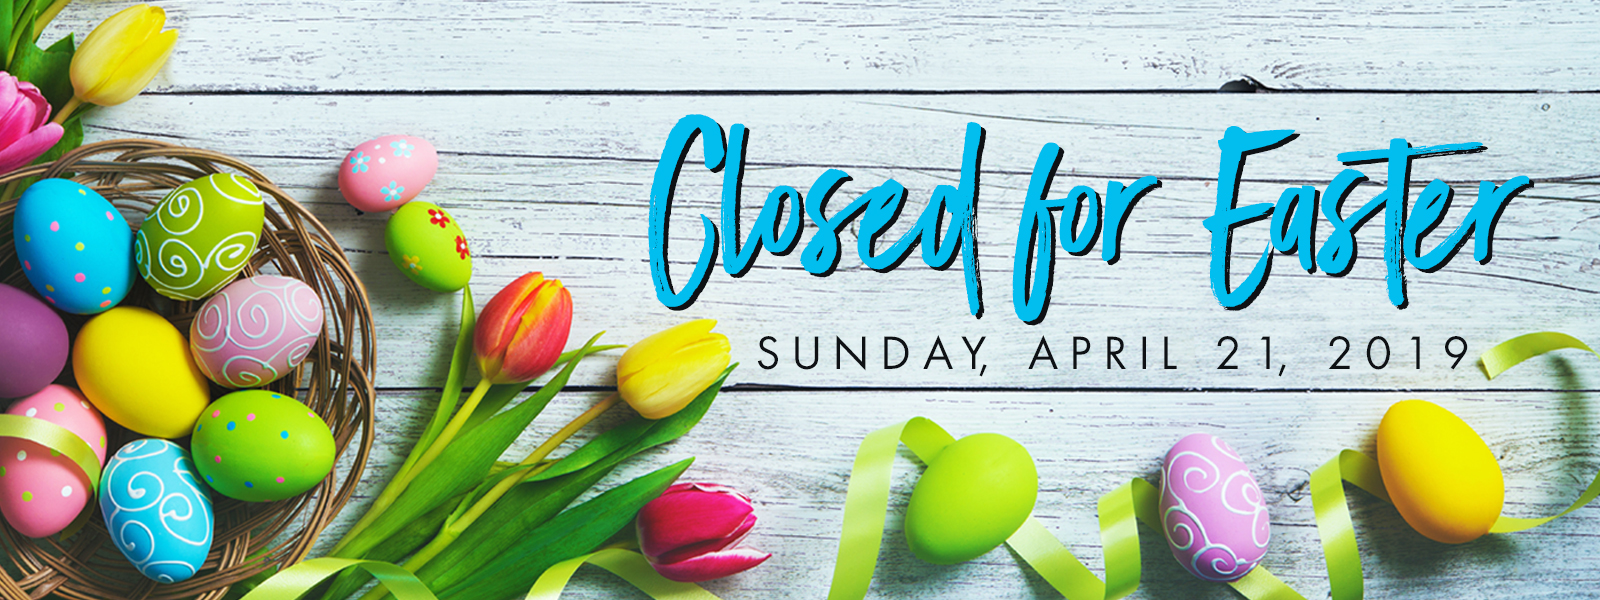 Closed for Easter on Sunday, April 21, 2019 Eggs and flowers